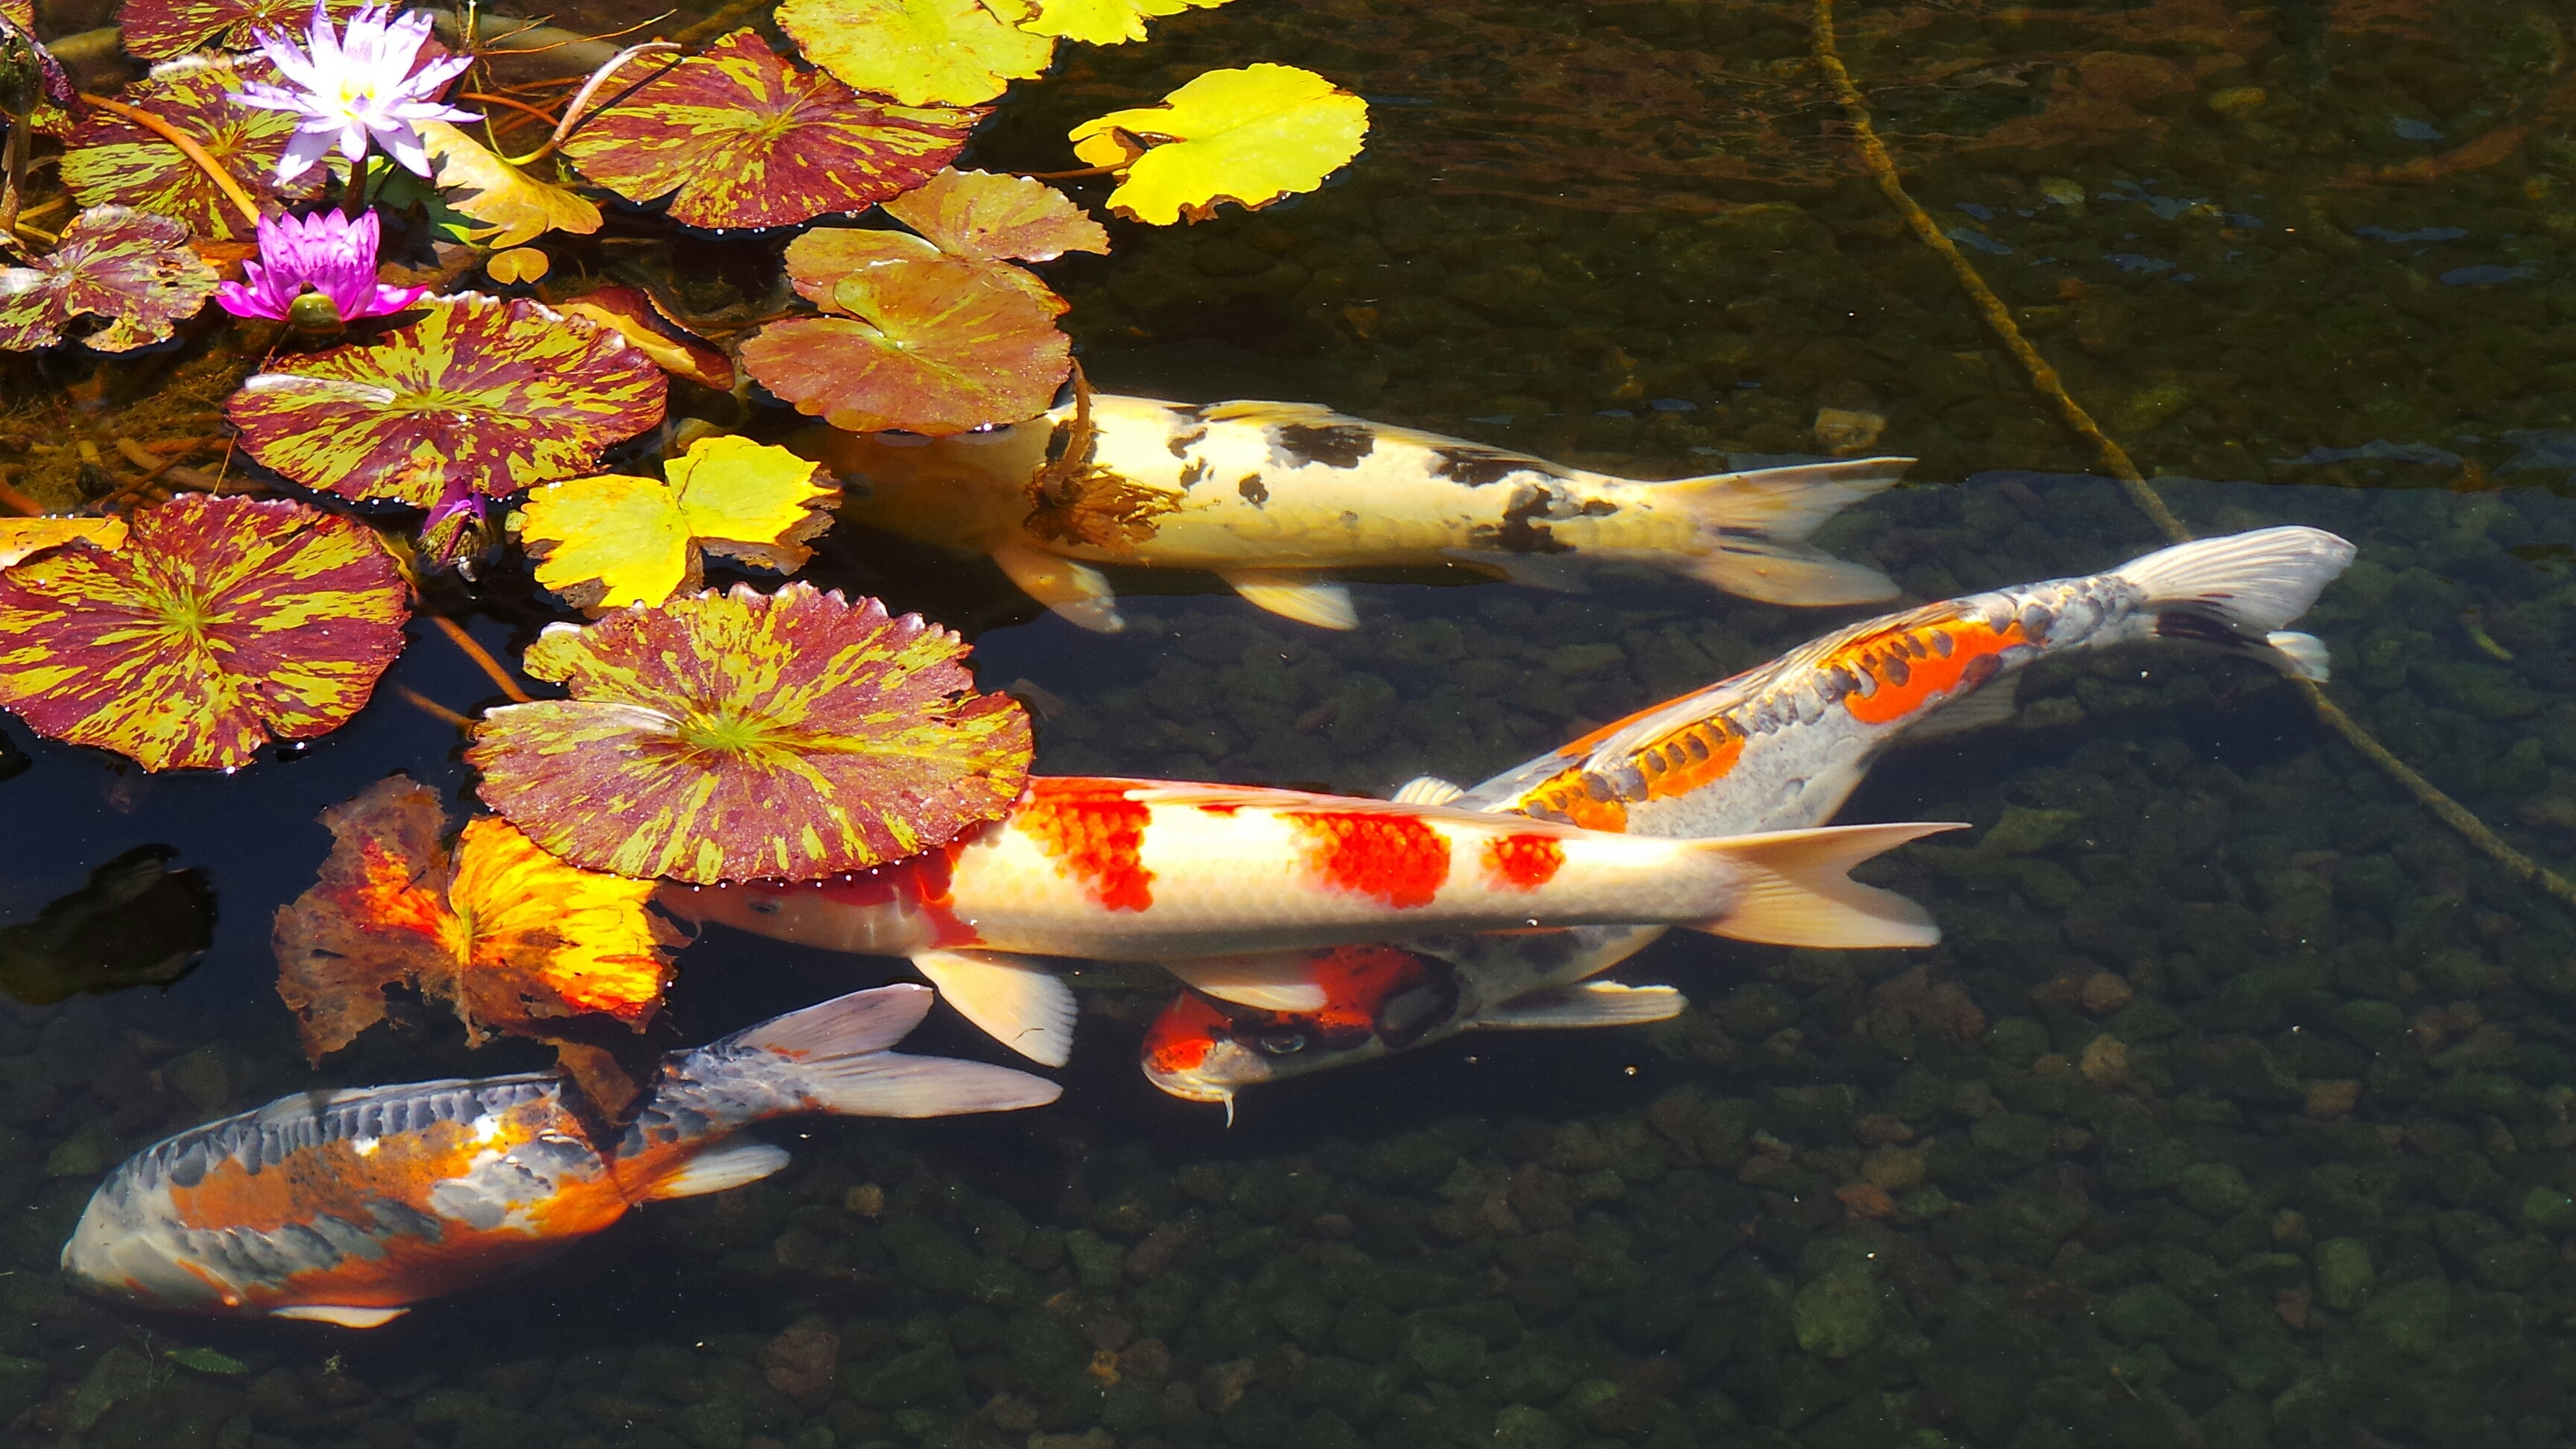 Guide to the fashion island koi ponds in newport beach for Fish pond images